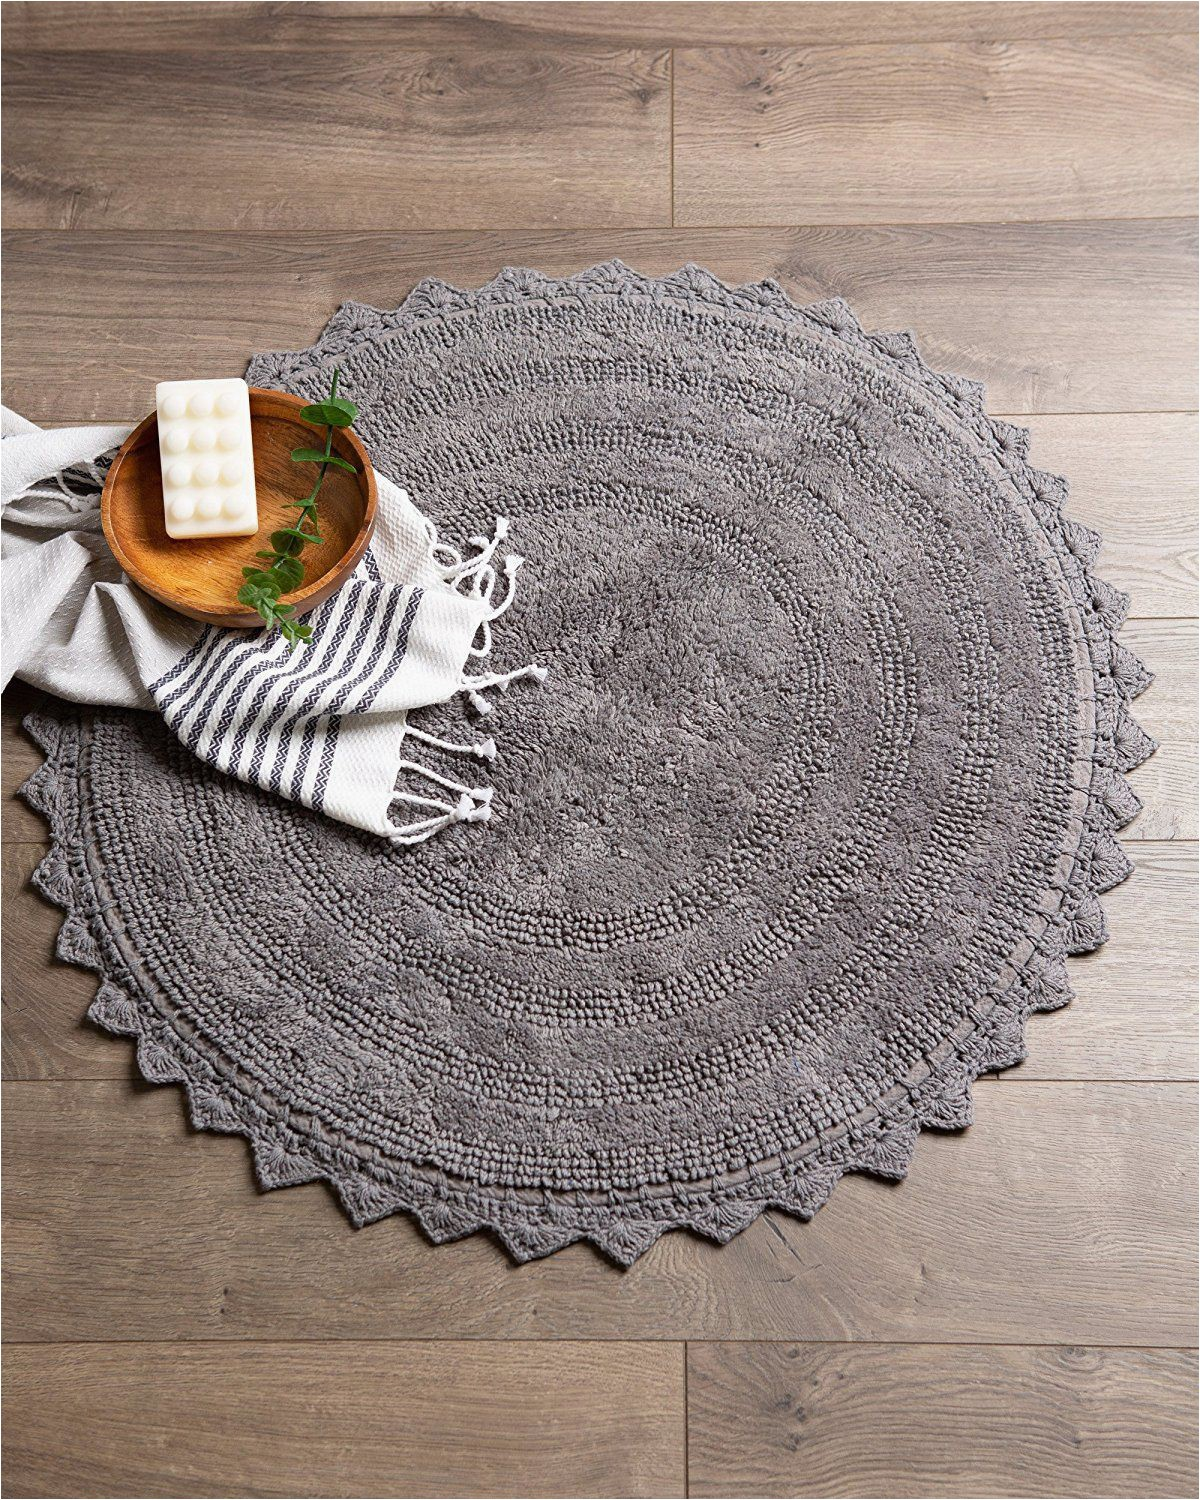 Round Gray Bath Rug Amazon Dii Ultra soft Spa Cotton Crochet Round Bath Mat